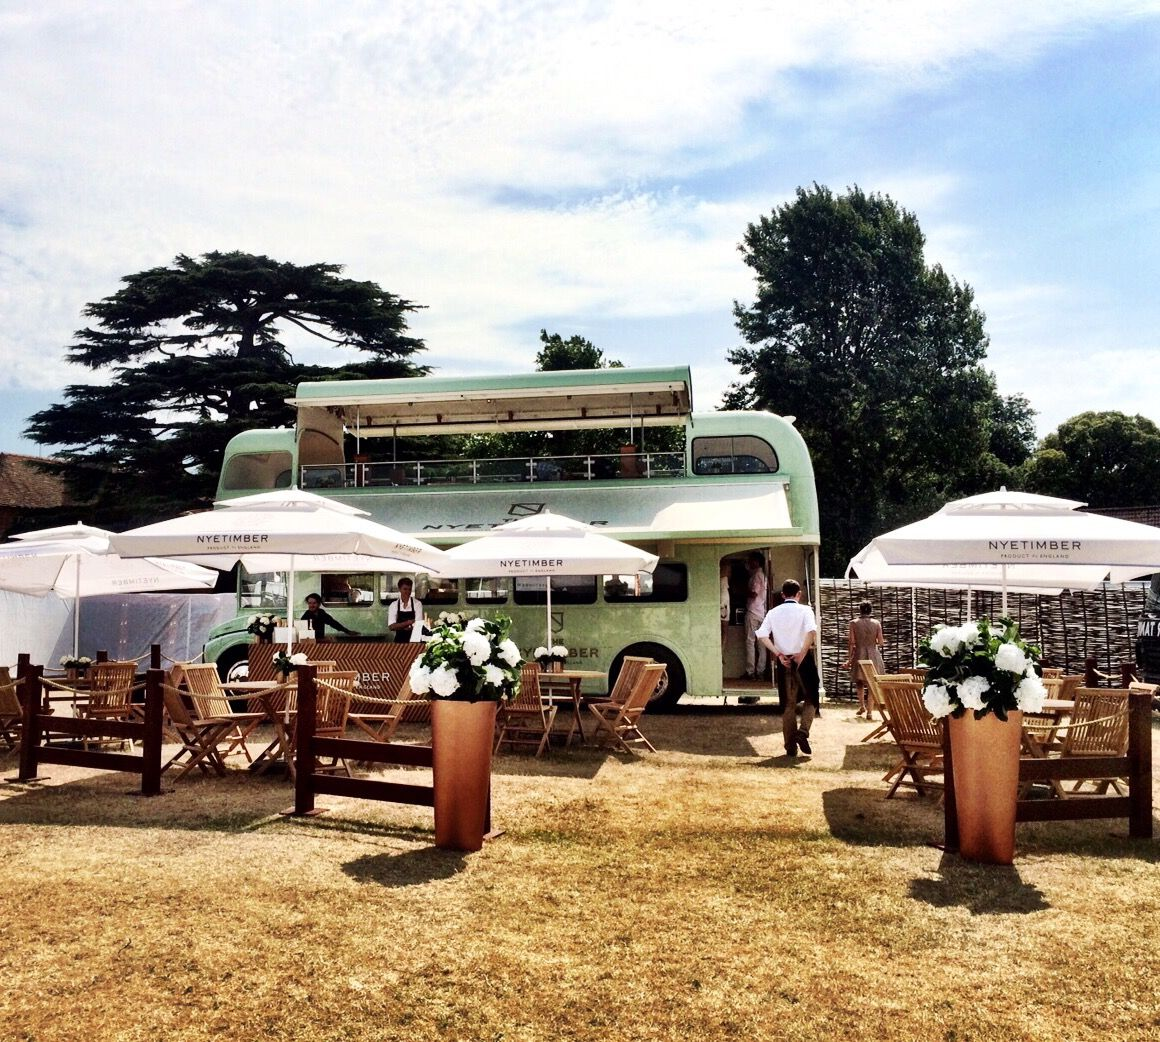 a green vintage open top bus, set out for dining with chairs, tables and parasols, decorated with white flowers